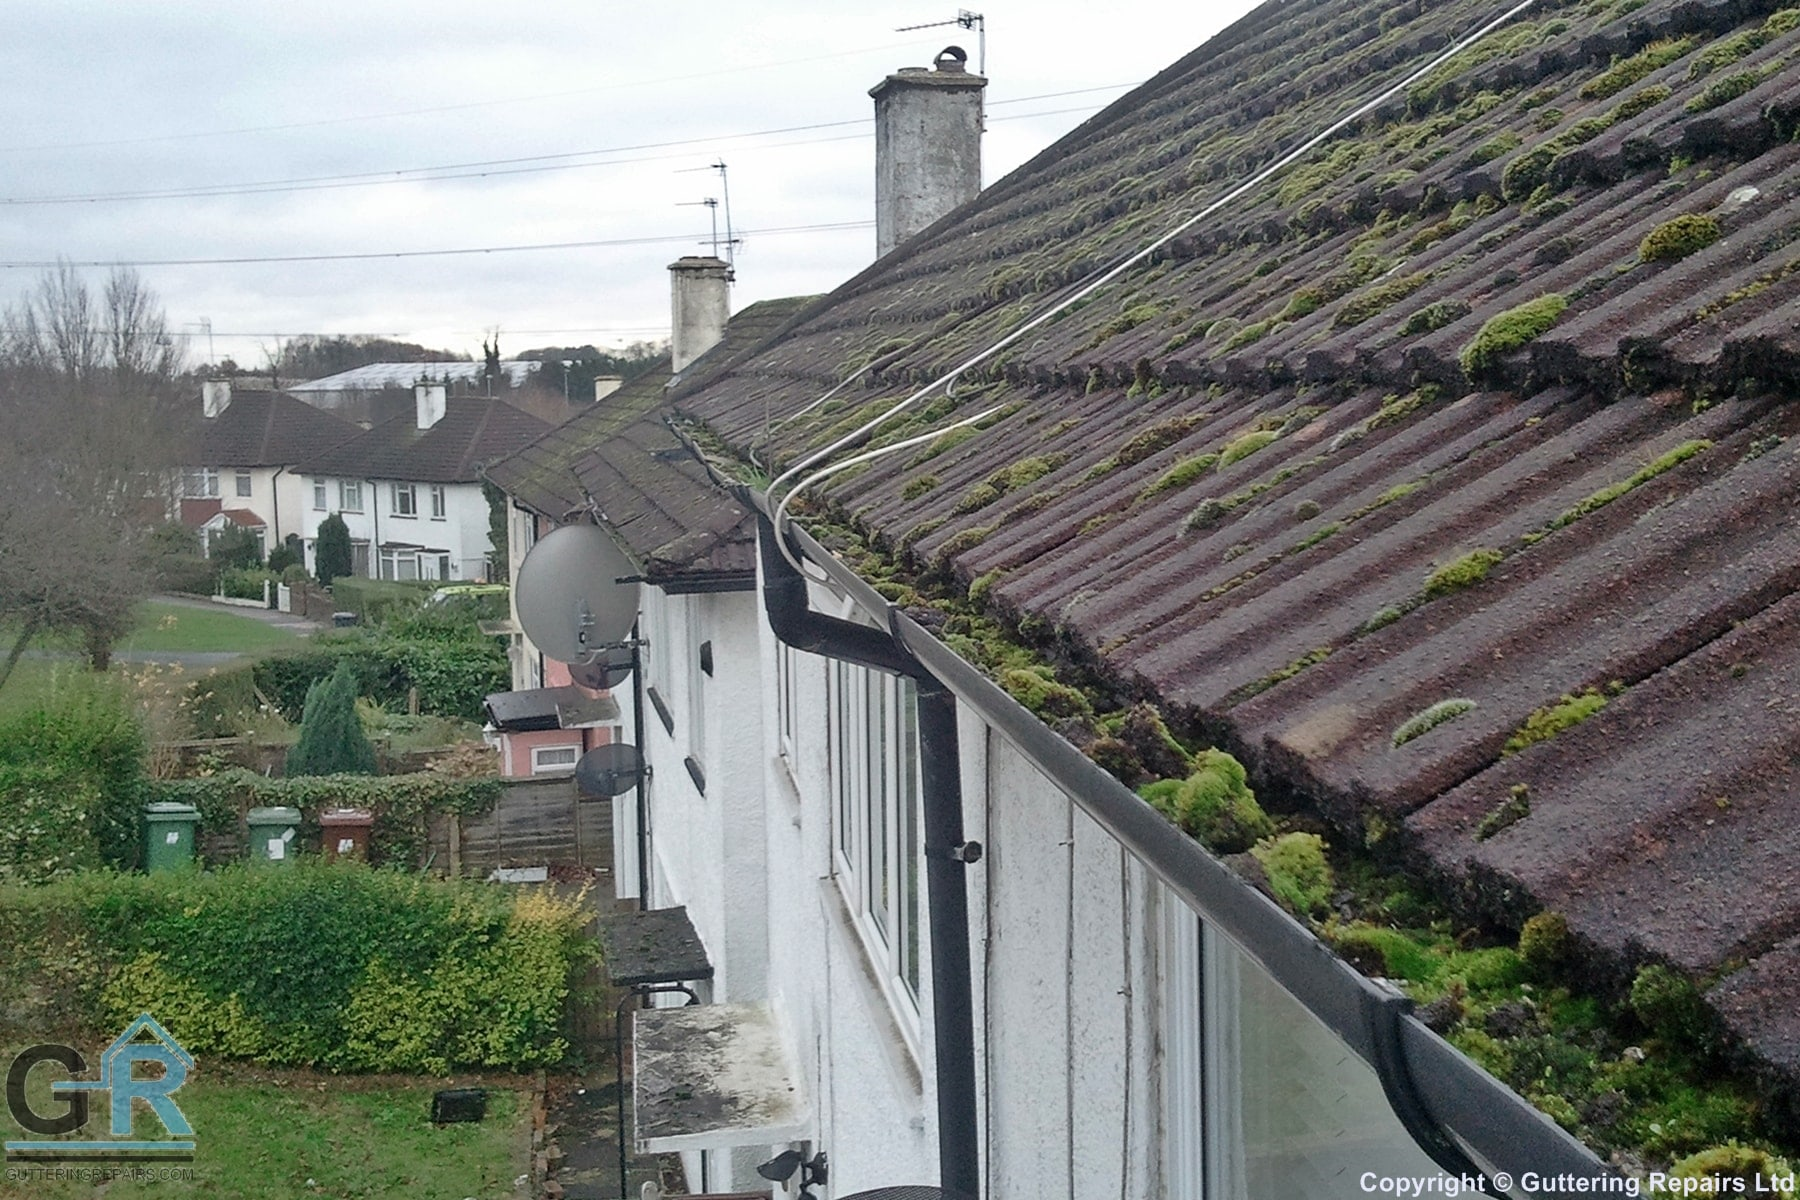 Guttering, Roofing and Scaffolding Services